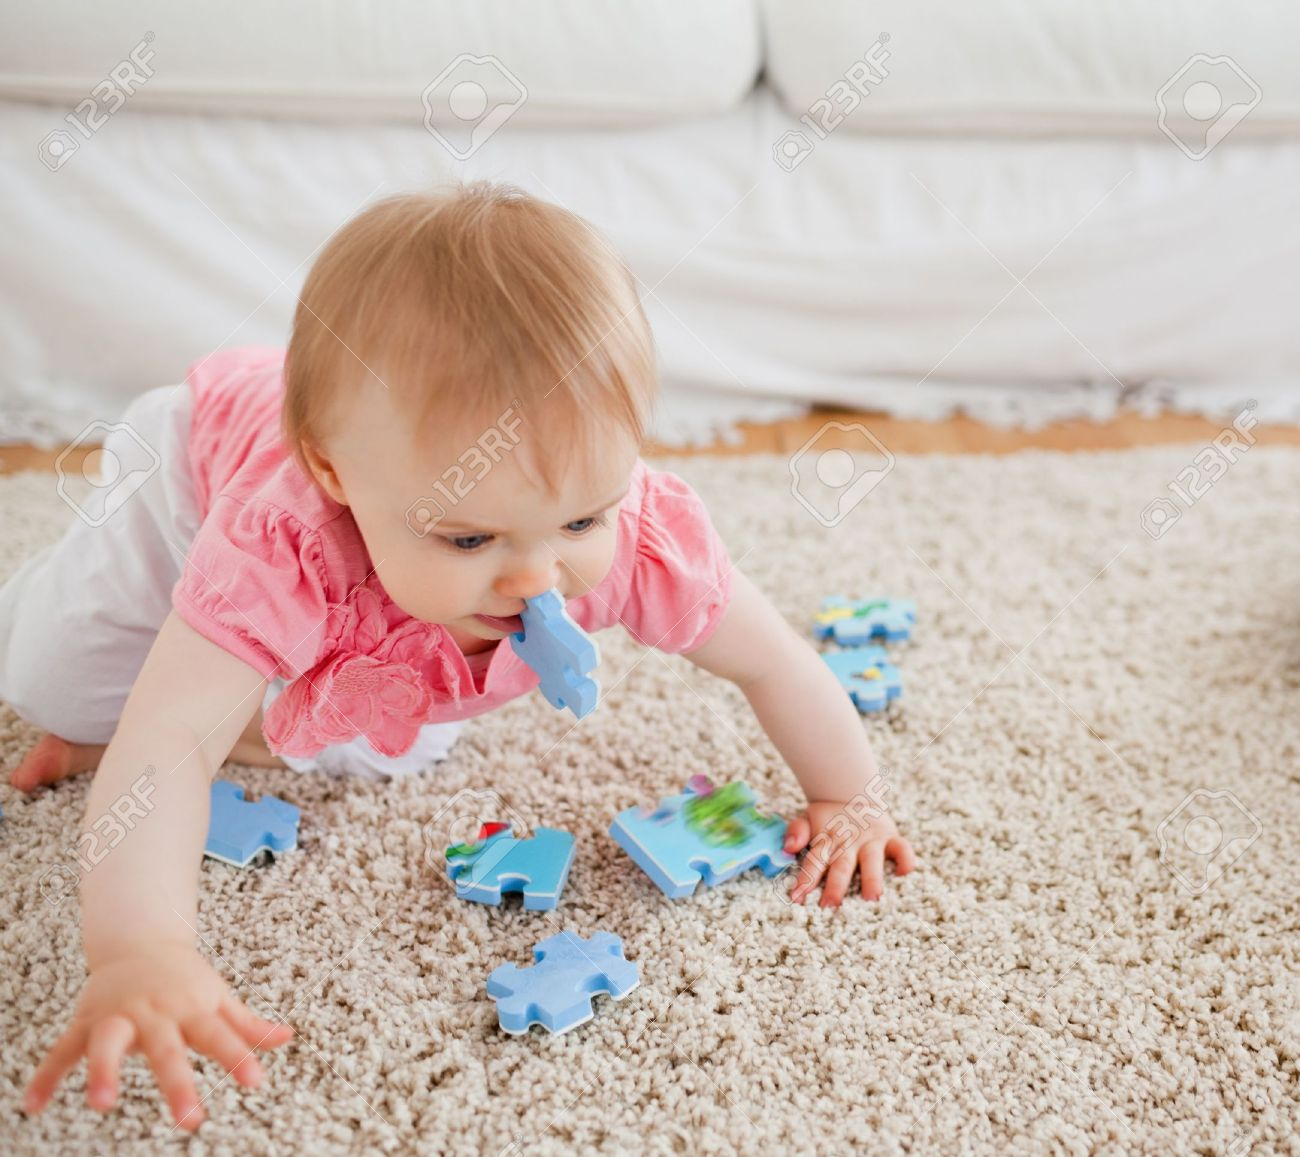 Tappeto Puzzle Baby Smile Lovely Blond Baby Playing With Puzzle Pieces On A Carpet In The